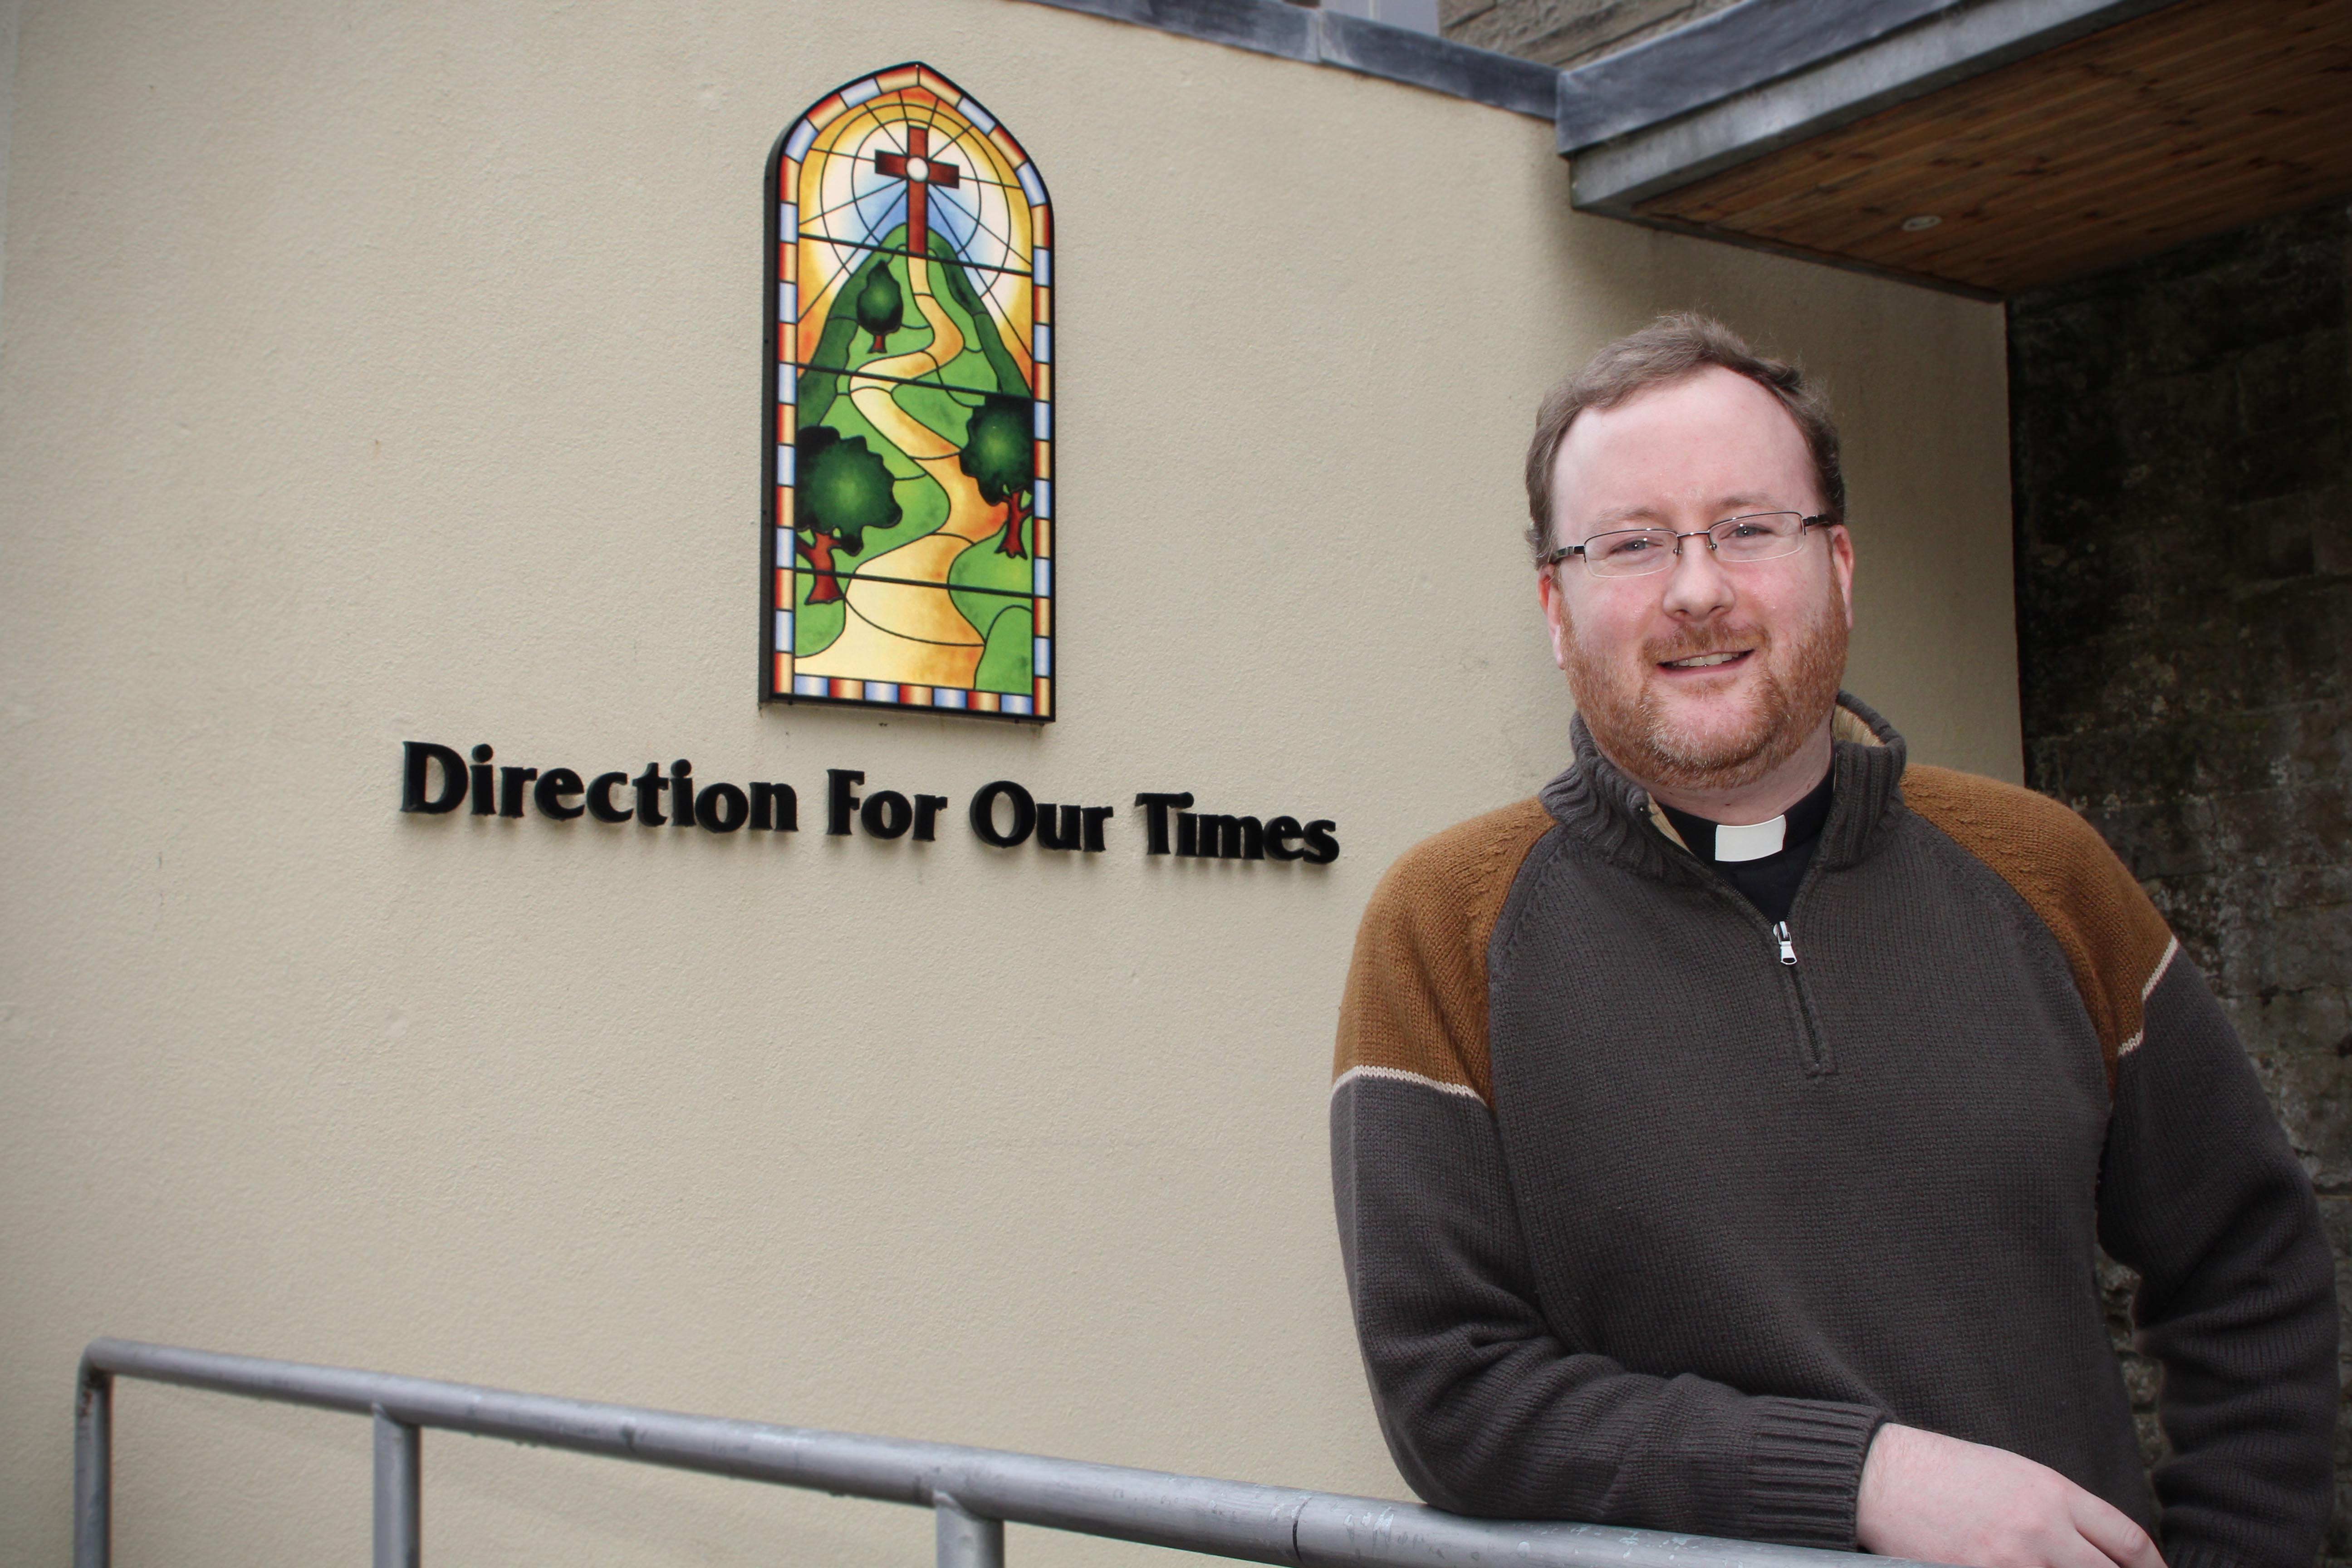 Fr. Darragh Connolly, chaplain to Direction for Our Times